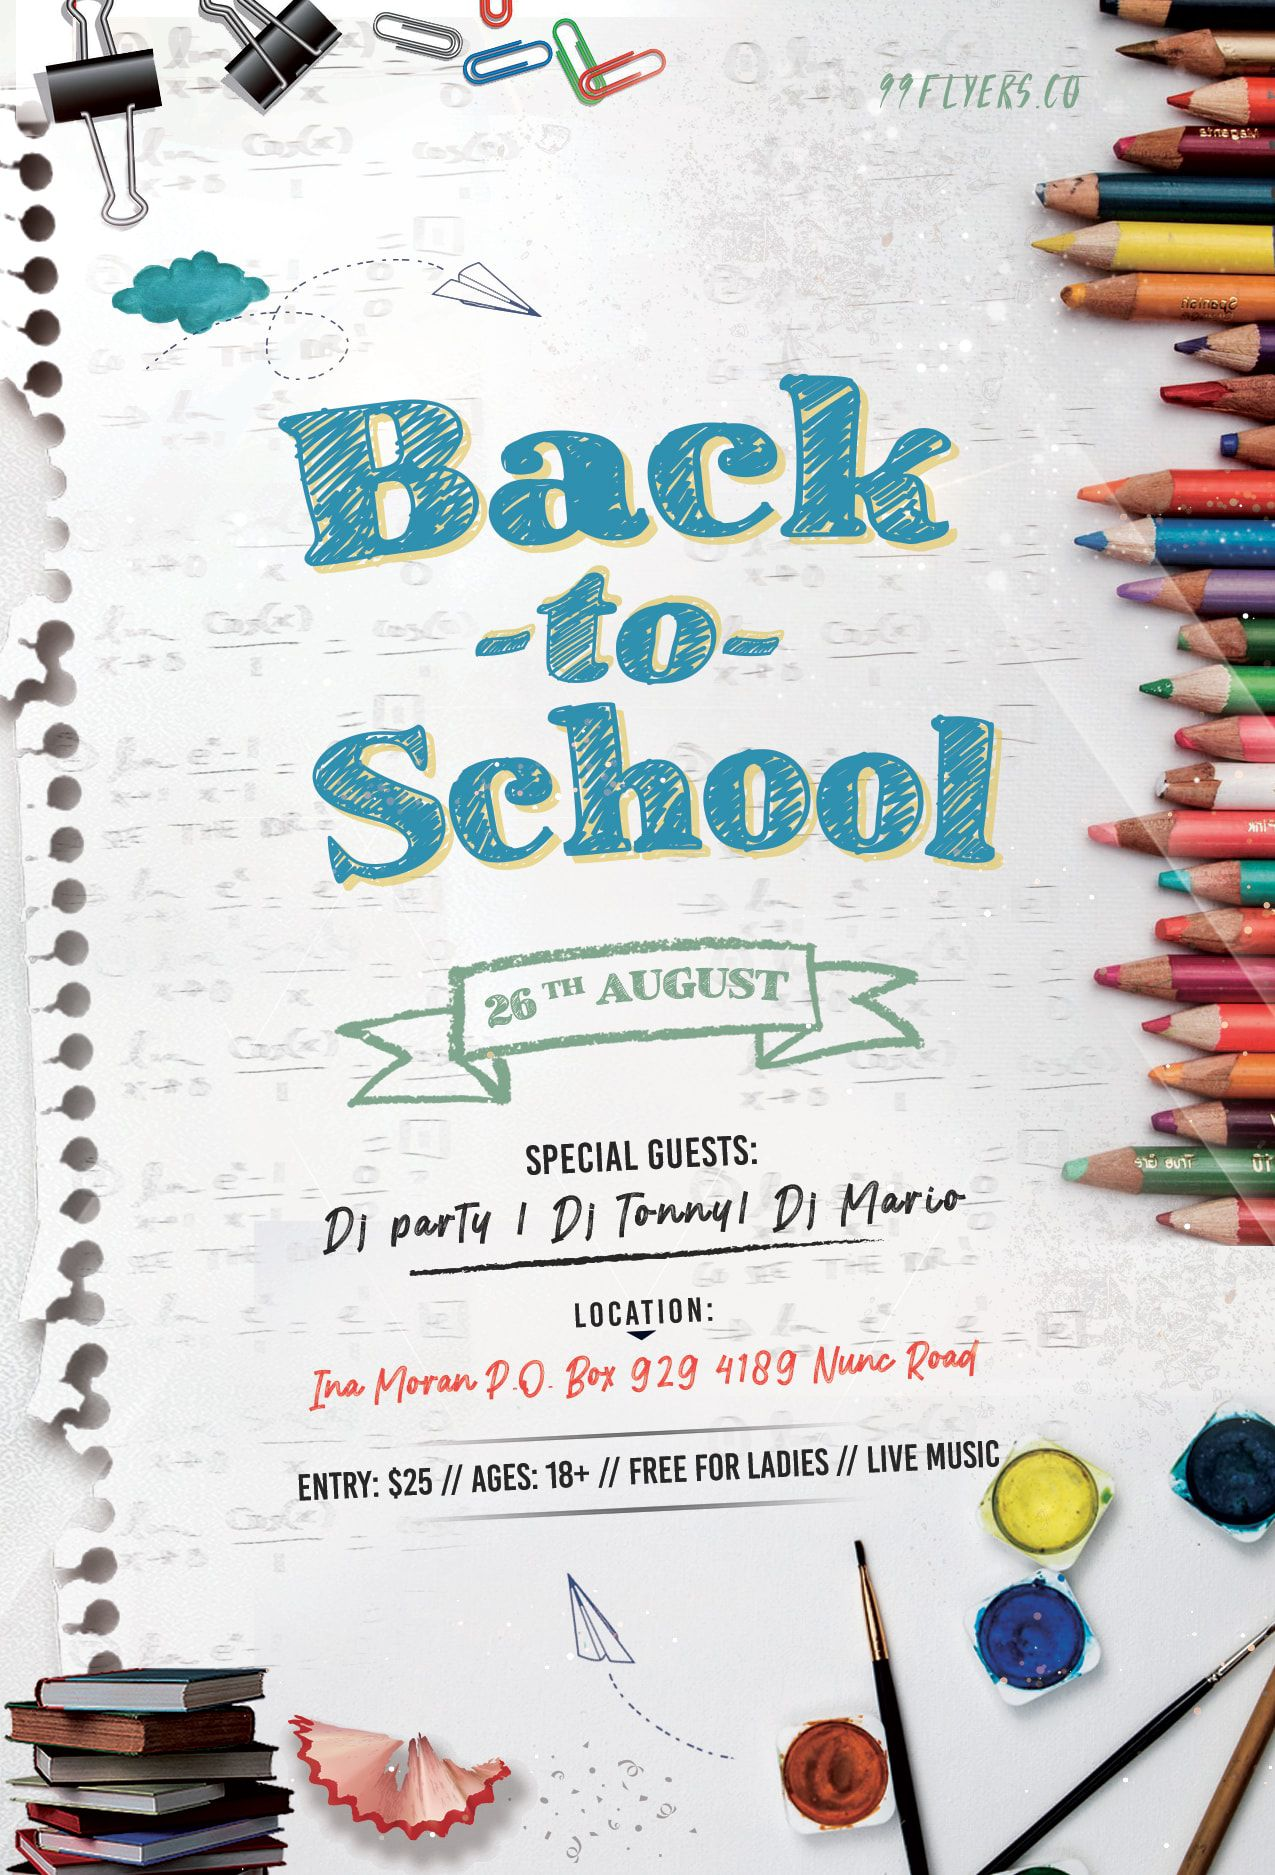 003 Imposing Free School Flyer Template High Definition  Templates Vacation Bible For Microsoft Word EventFull